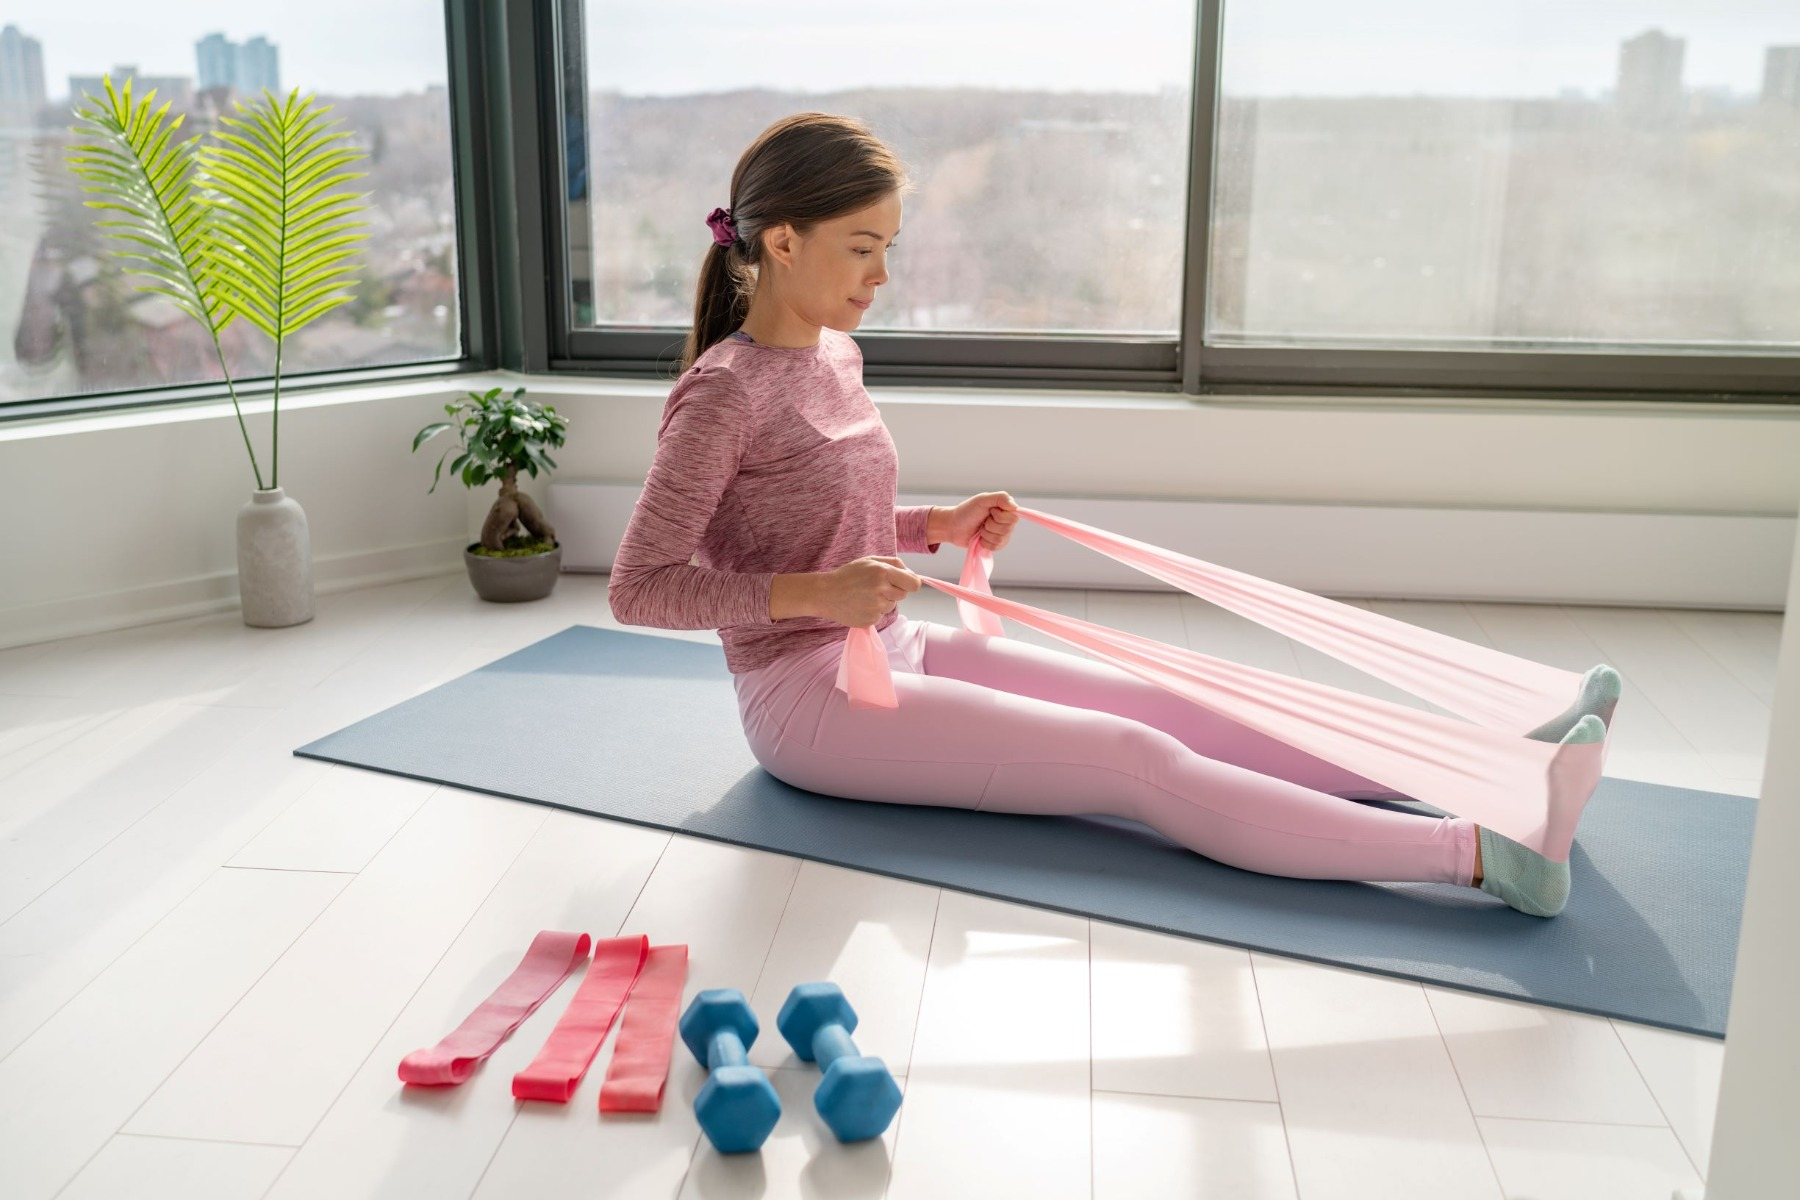 Woman sitting on mat doing row exercise with resistance band